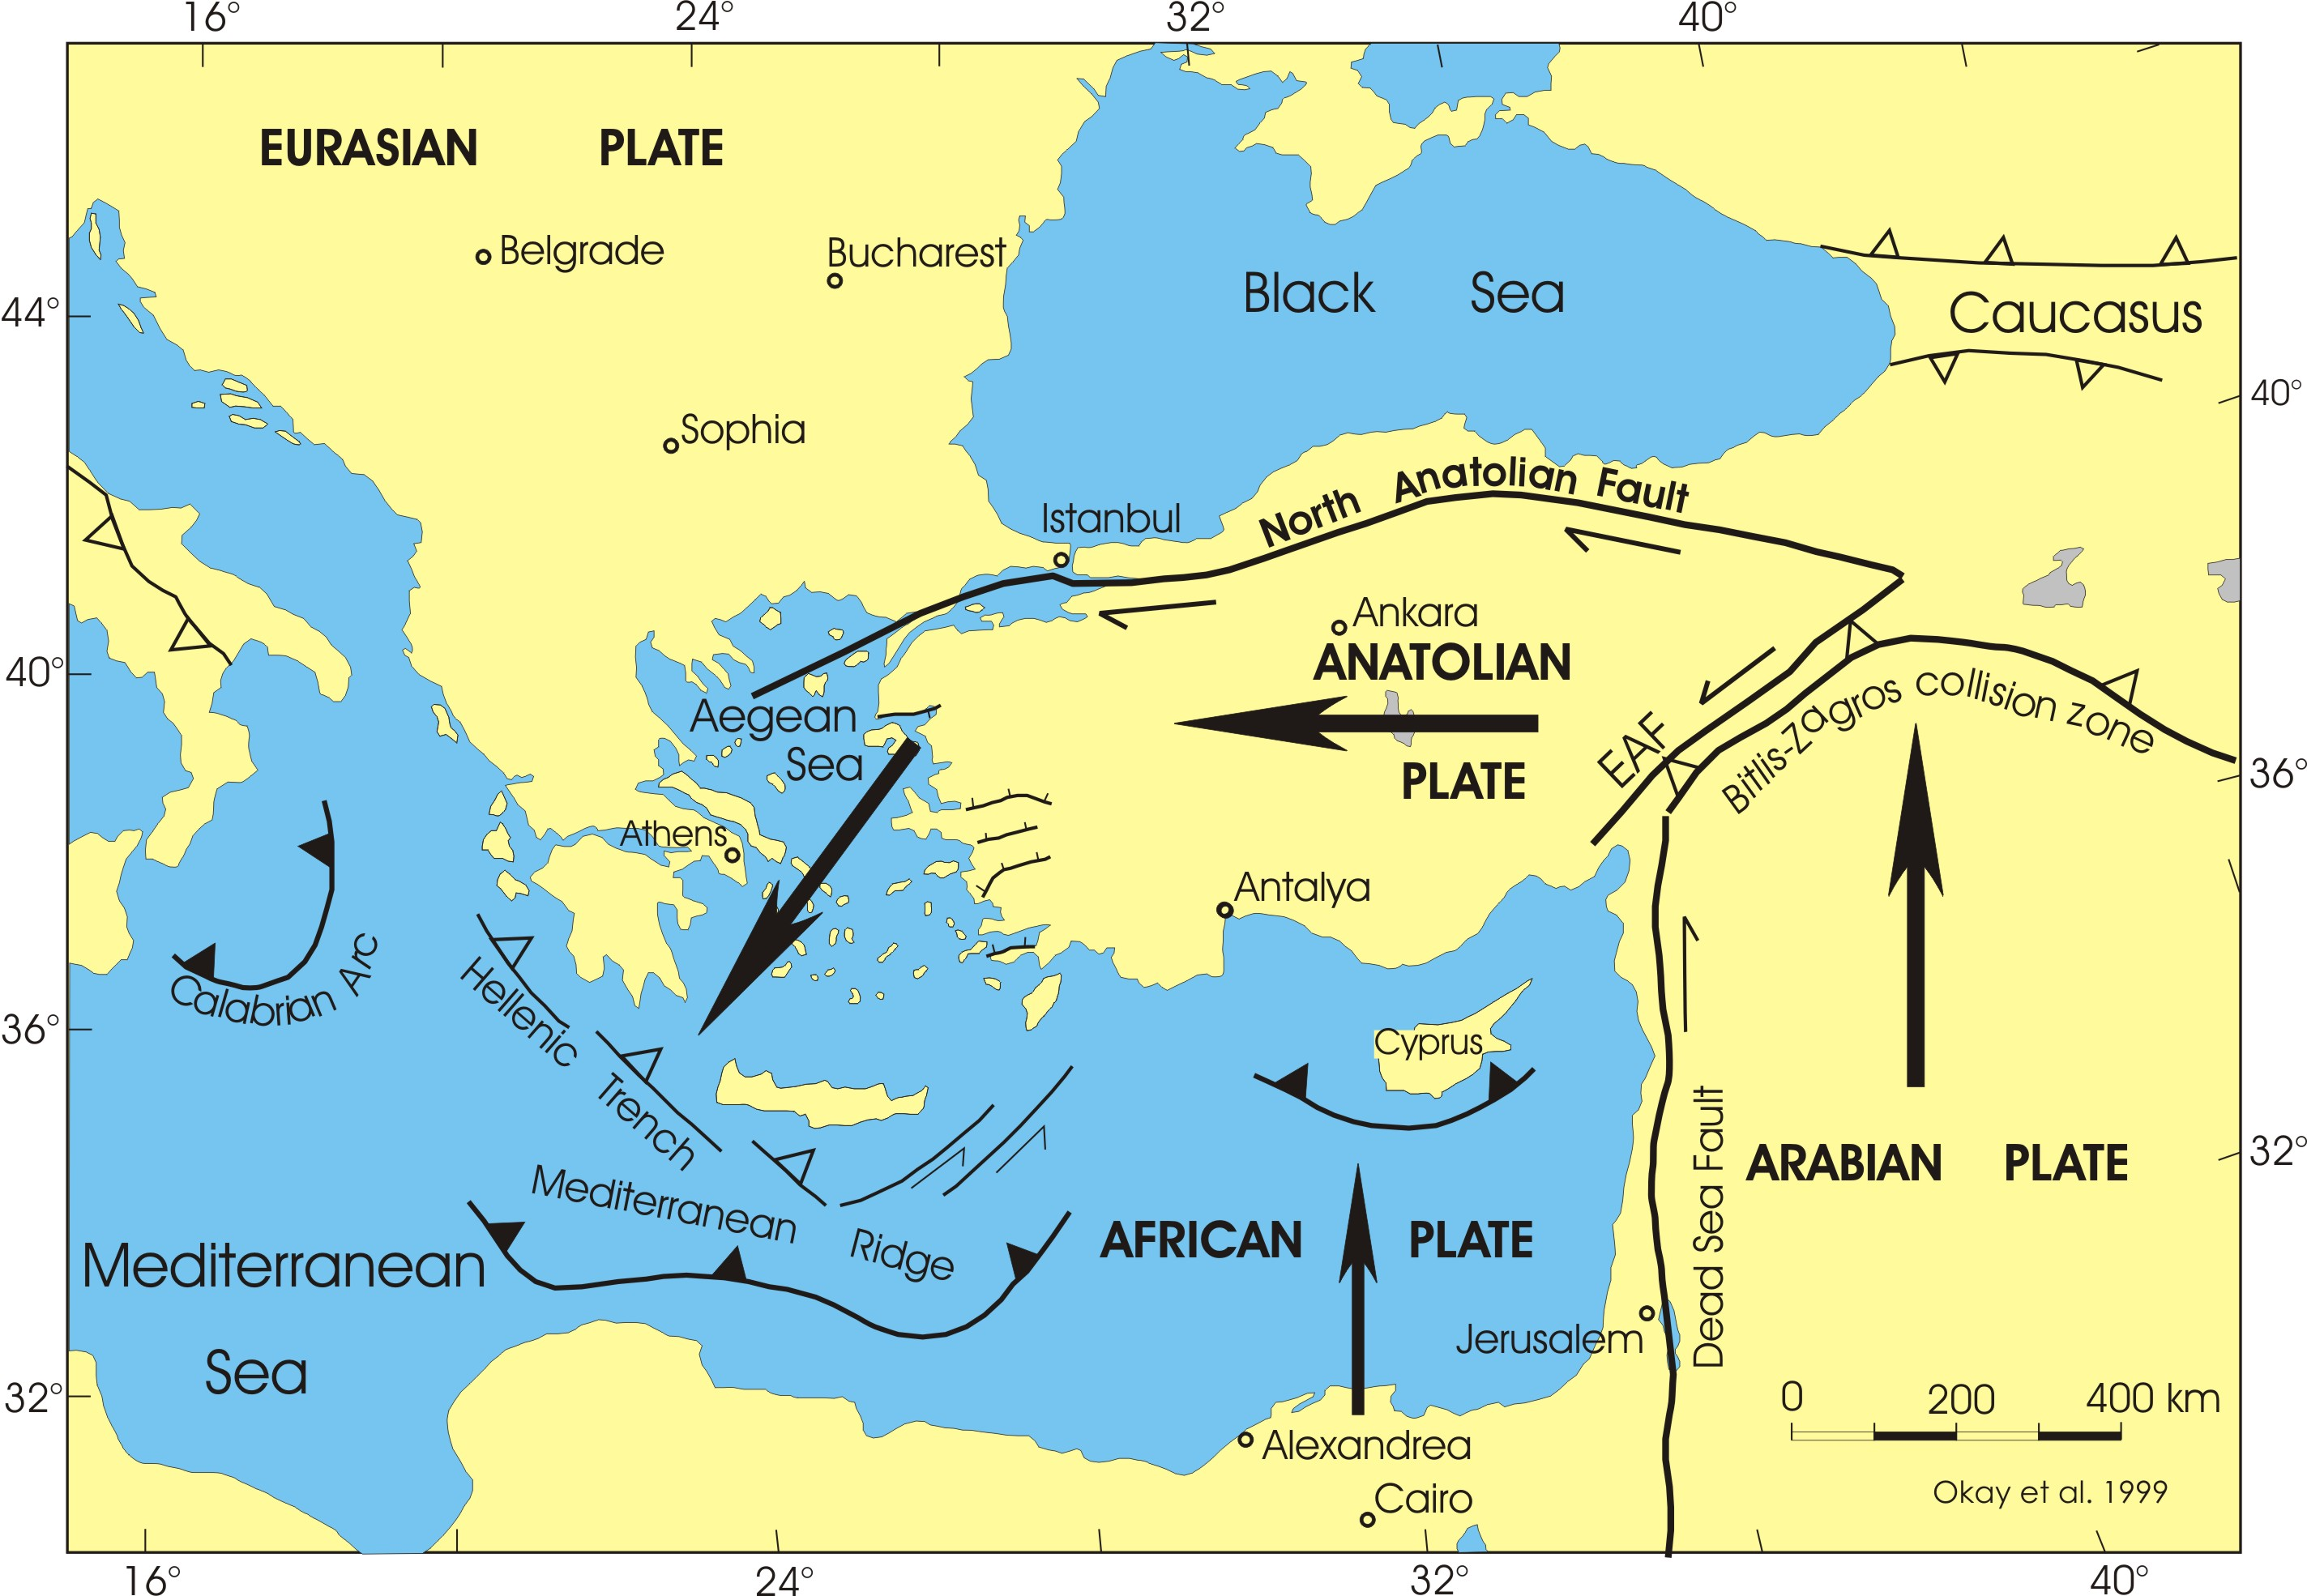 Map of active tectonic plates in the Eastern Mediterranean - Photo courtesy of New Scientist